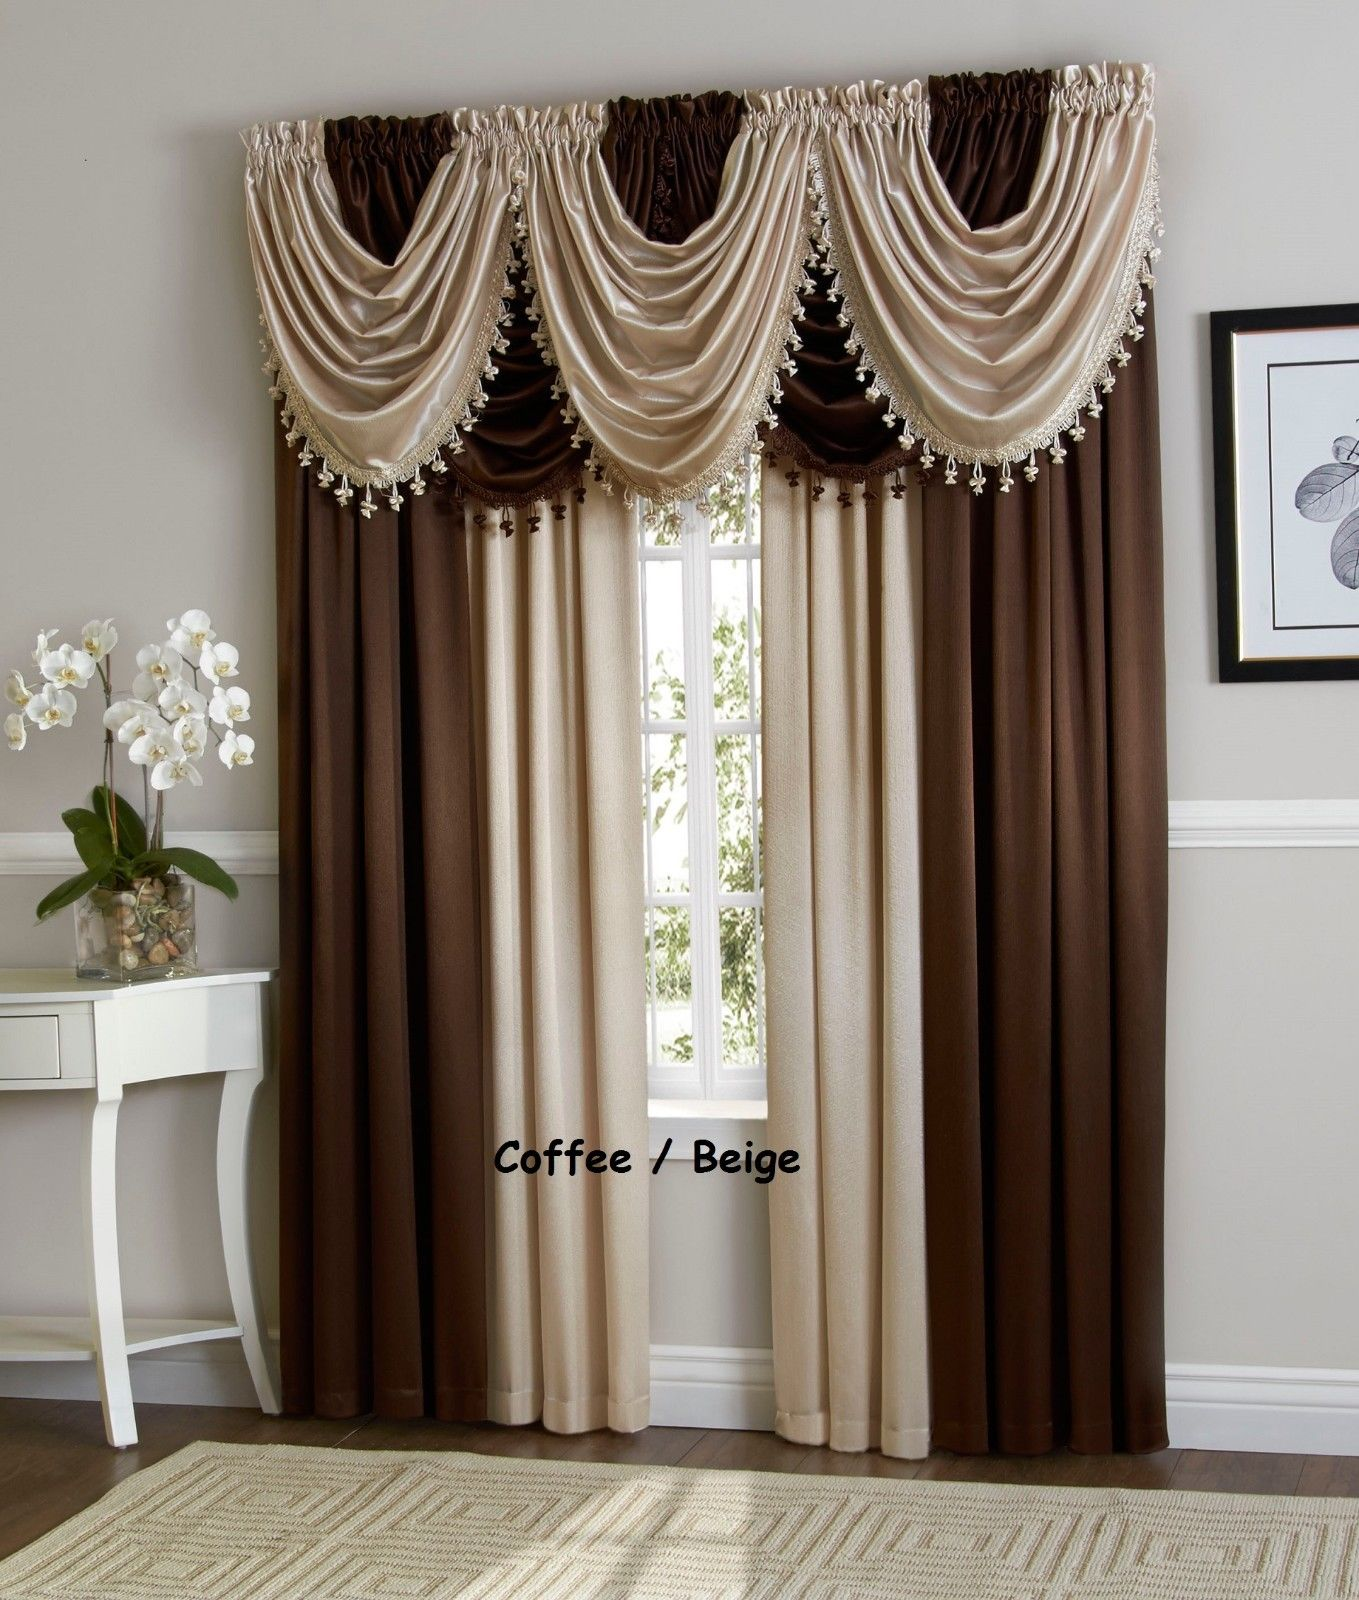 jcpenney living room curtains Curtains: Valance Curtains For Kitchen | Jcpenney Valances  1600 X 1359